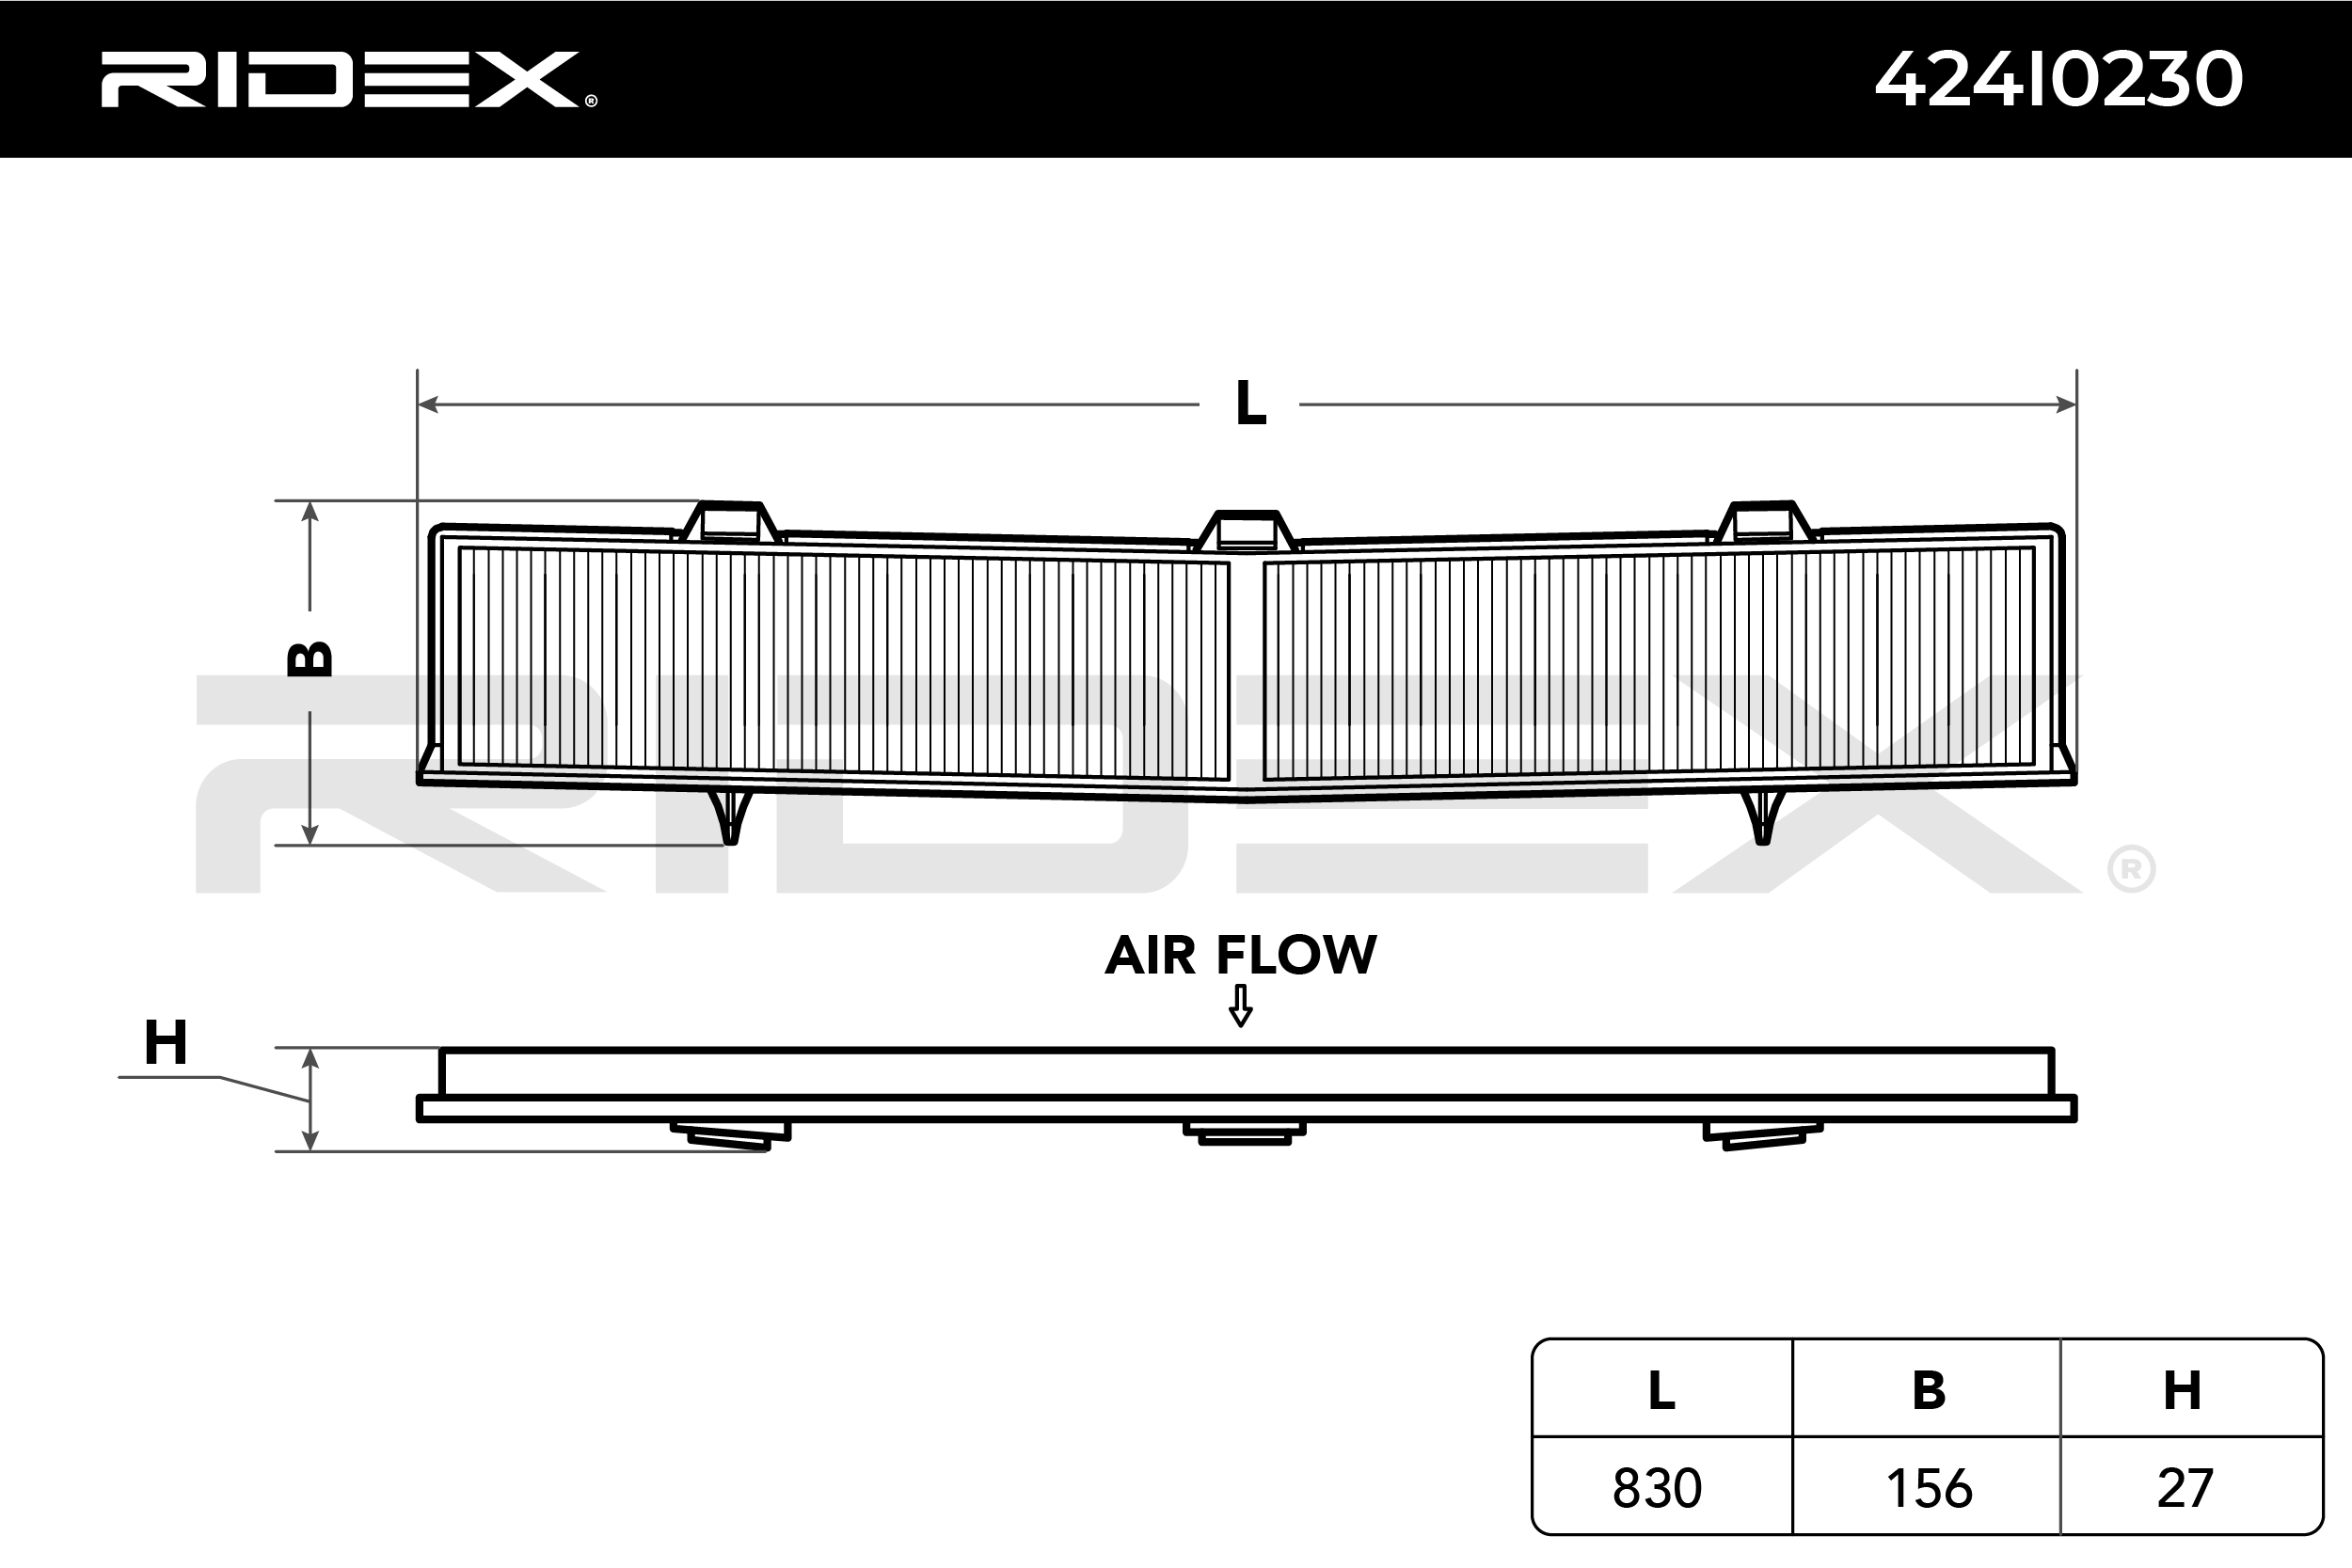 Cabin Air Filter RIDEX 424I0230 expert knowledge